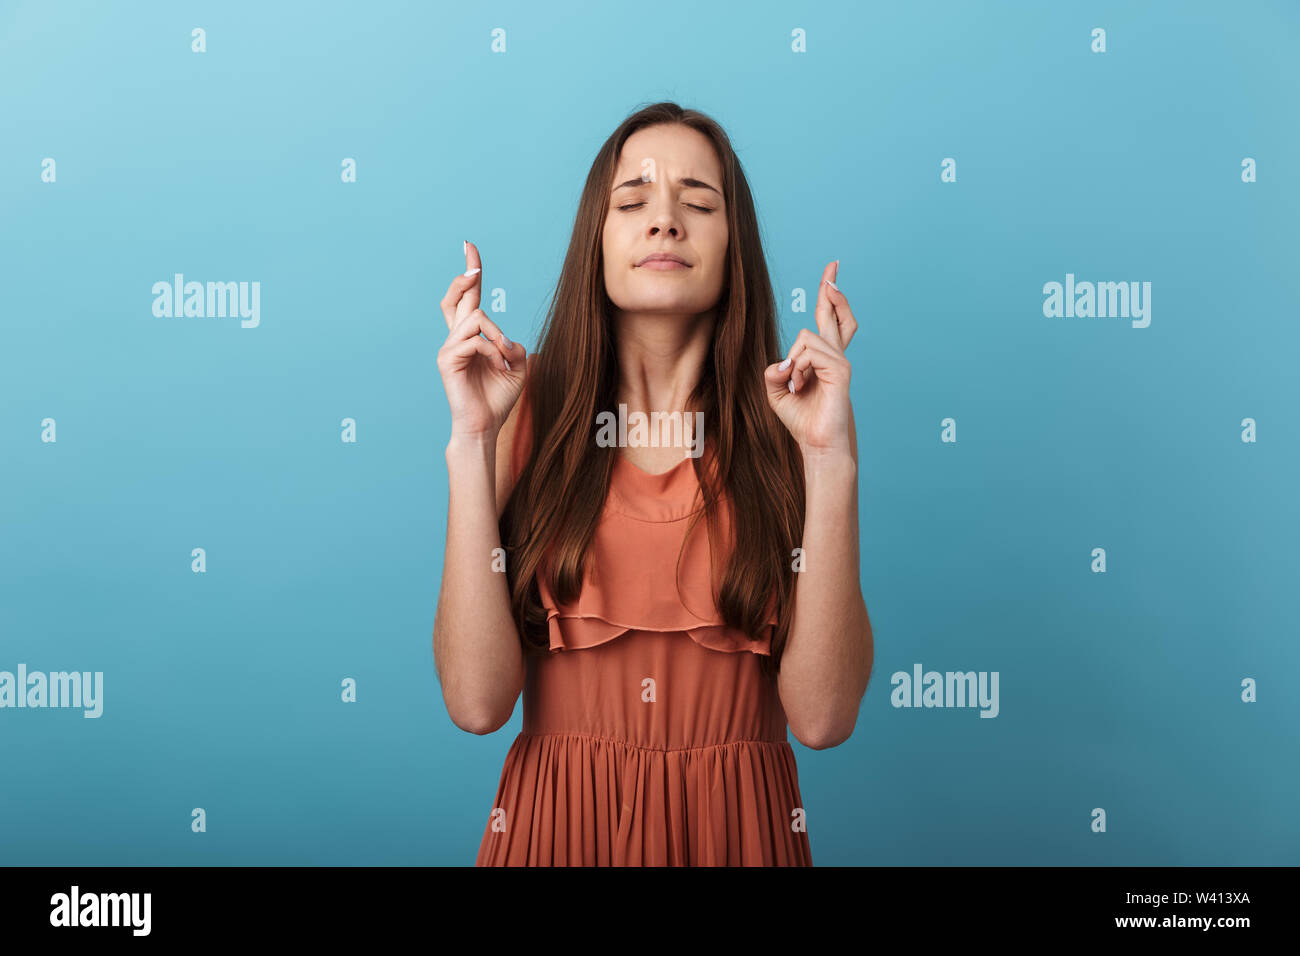 Cute Lovely Young Girl Standing Isolated Over Blue Background